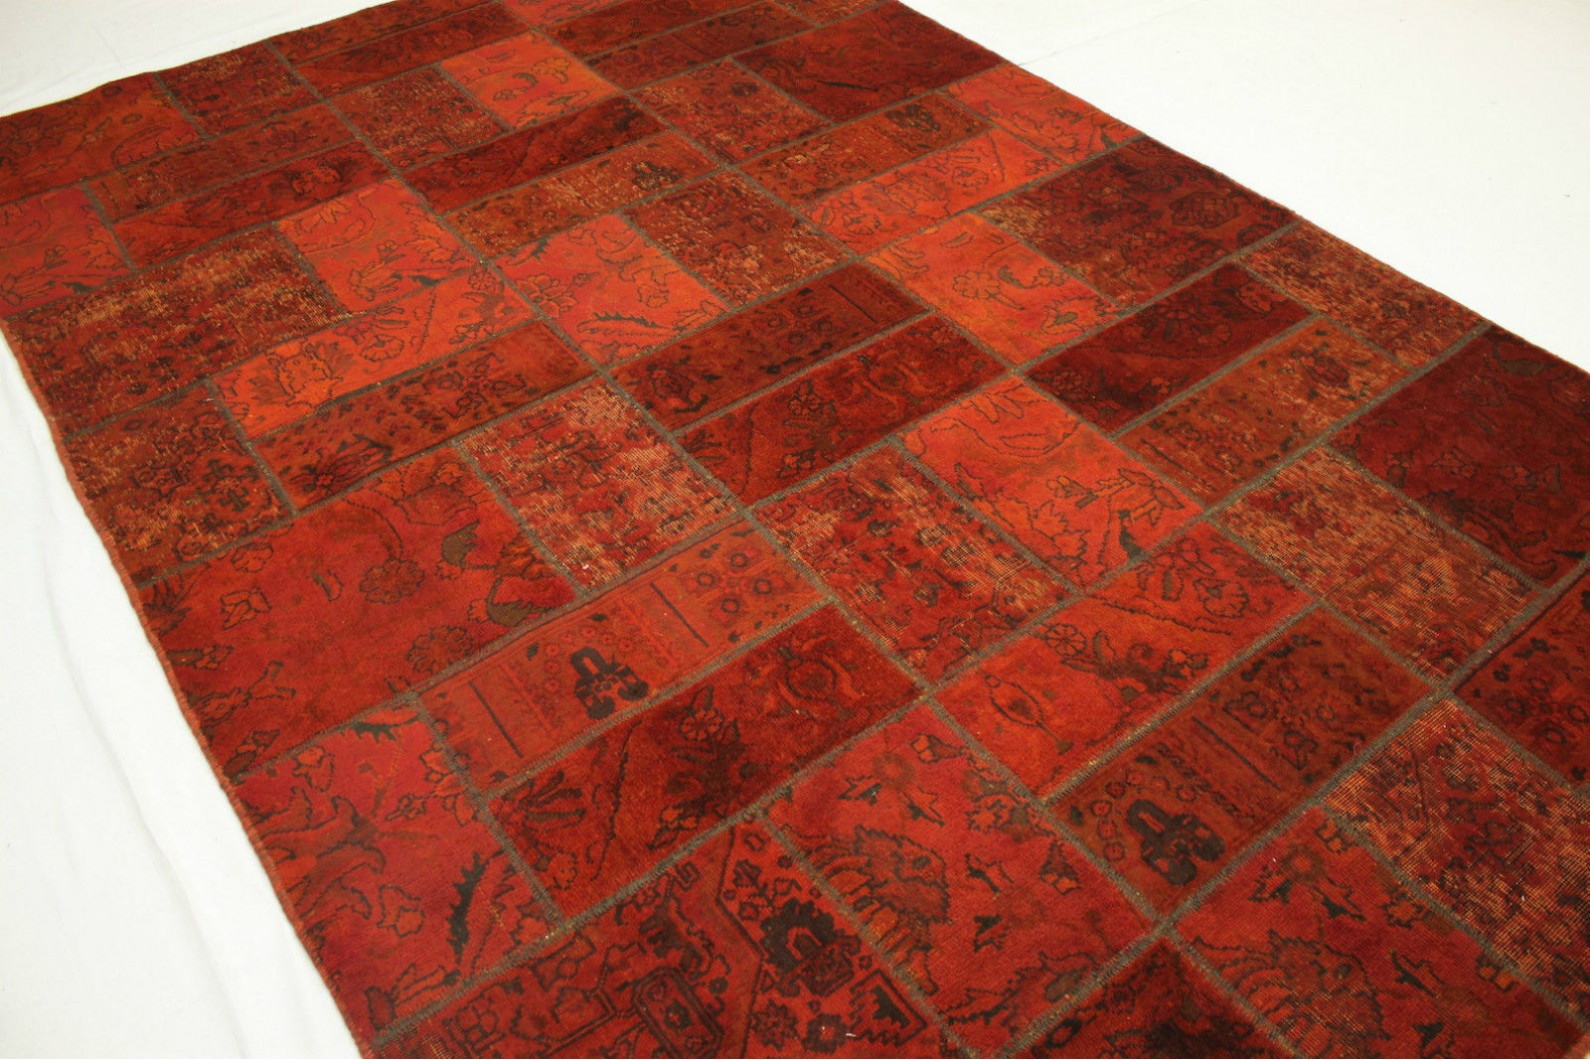 patchwork teppich rot in 310x200cm 1001 1892 bei. Black Bedroom Furniture Sets. Home Design Ideas